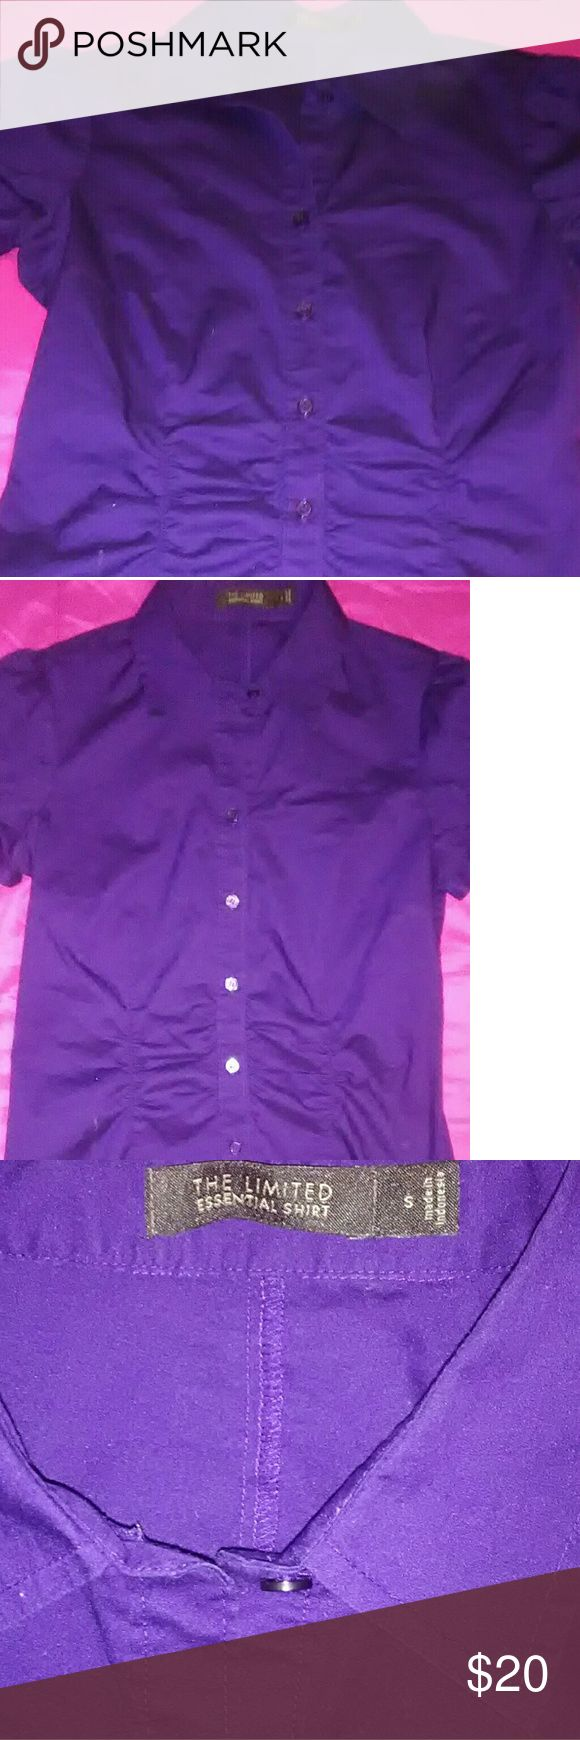 Purple top by The Limited Really cute purple womens top is a button down. Its made adorably.  Its called the Essential Shirt.  Its kind of gathered at the waist and on the back. The shoulders are cuffed and shorter sleeves but not sleeveless. Only worn once. The Limited Tops Blouses